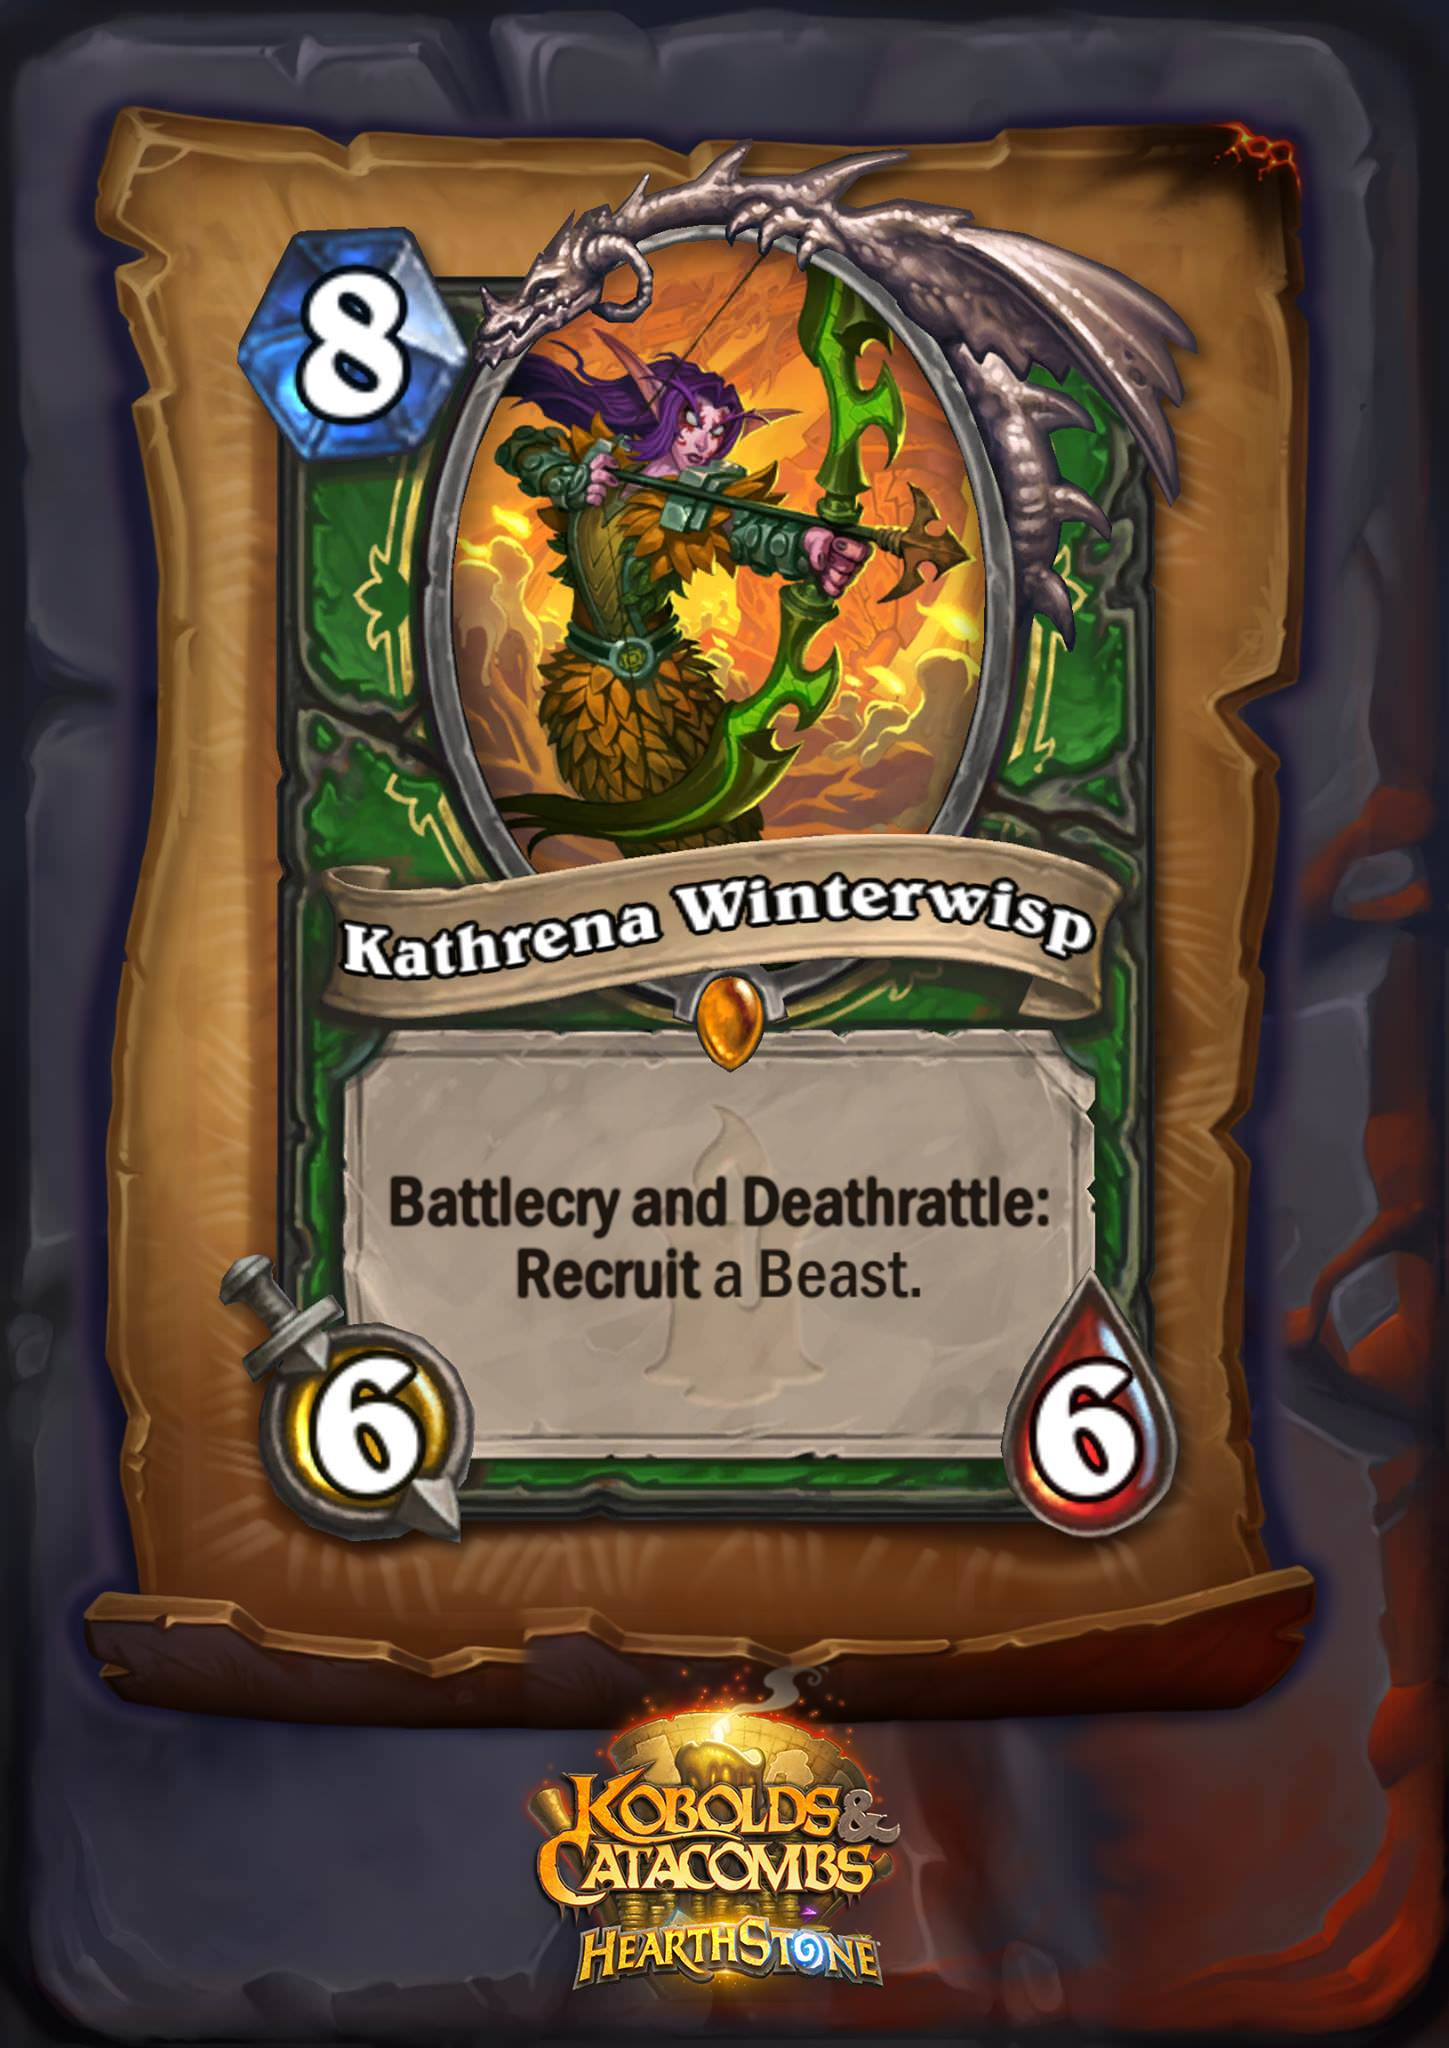 "Kathrena Winterwisp is an eight mana 6/6 Hunter legendary, and her card text reads: ""Battlecry and Deathrattle: Recruit a Beast."""